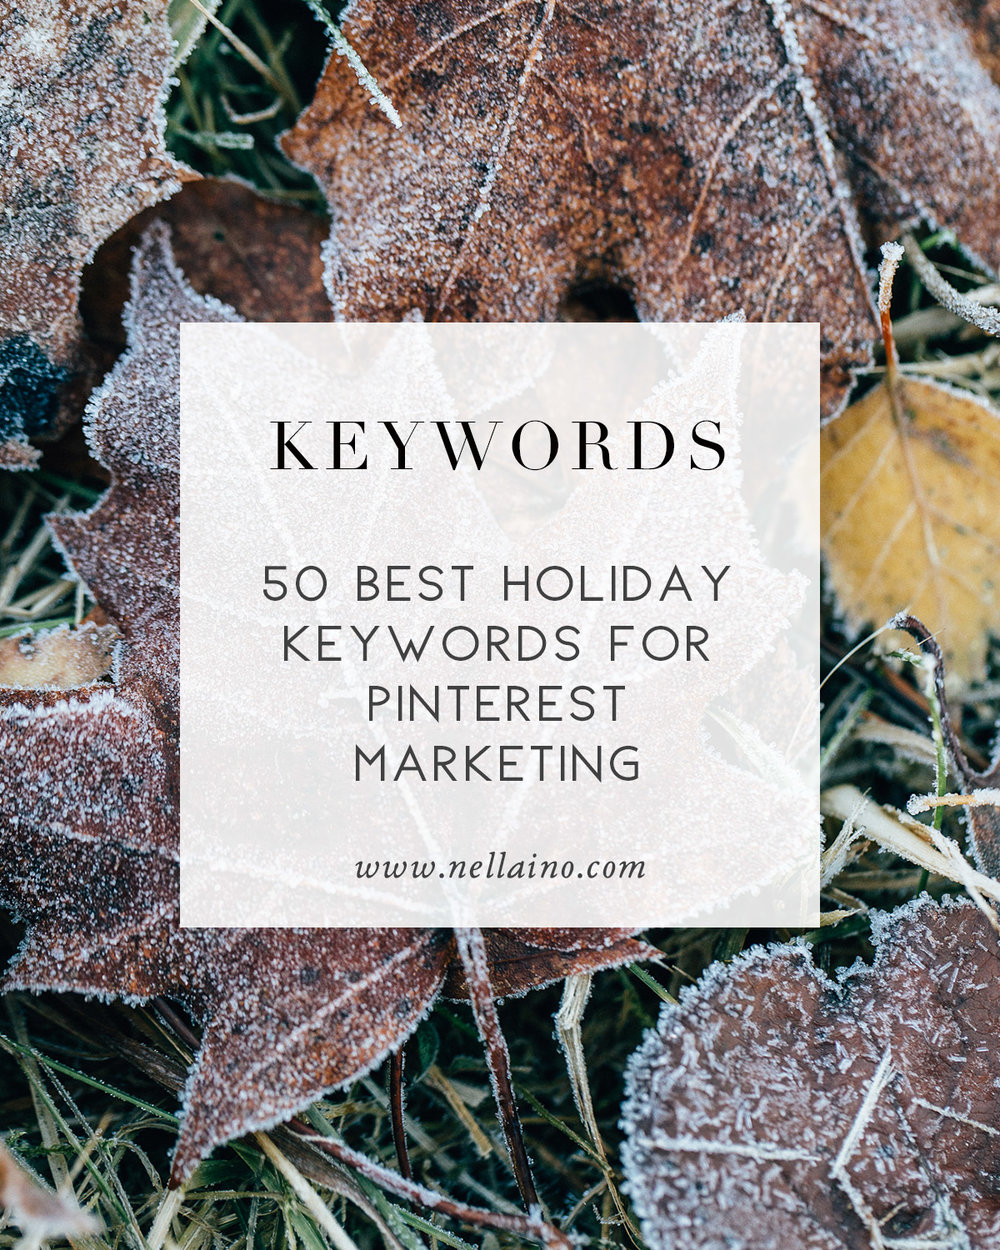 50-keywords-for-holiday-marketing-on-Pinterest.jpg